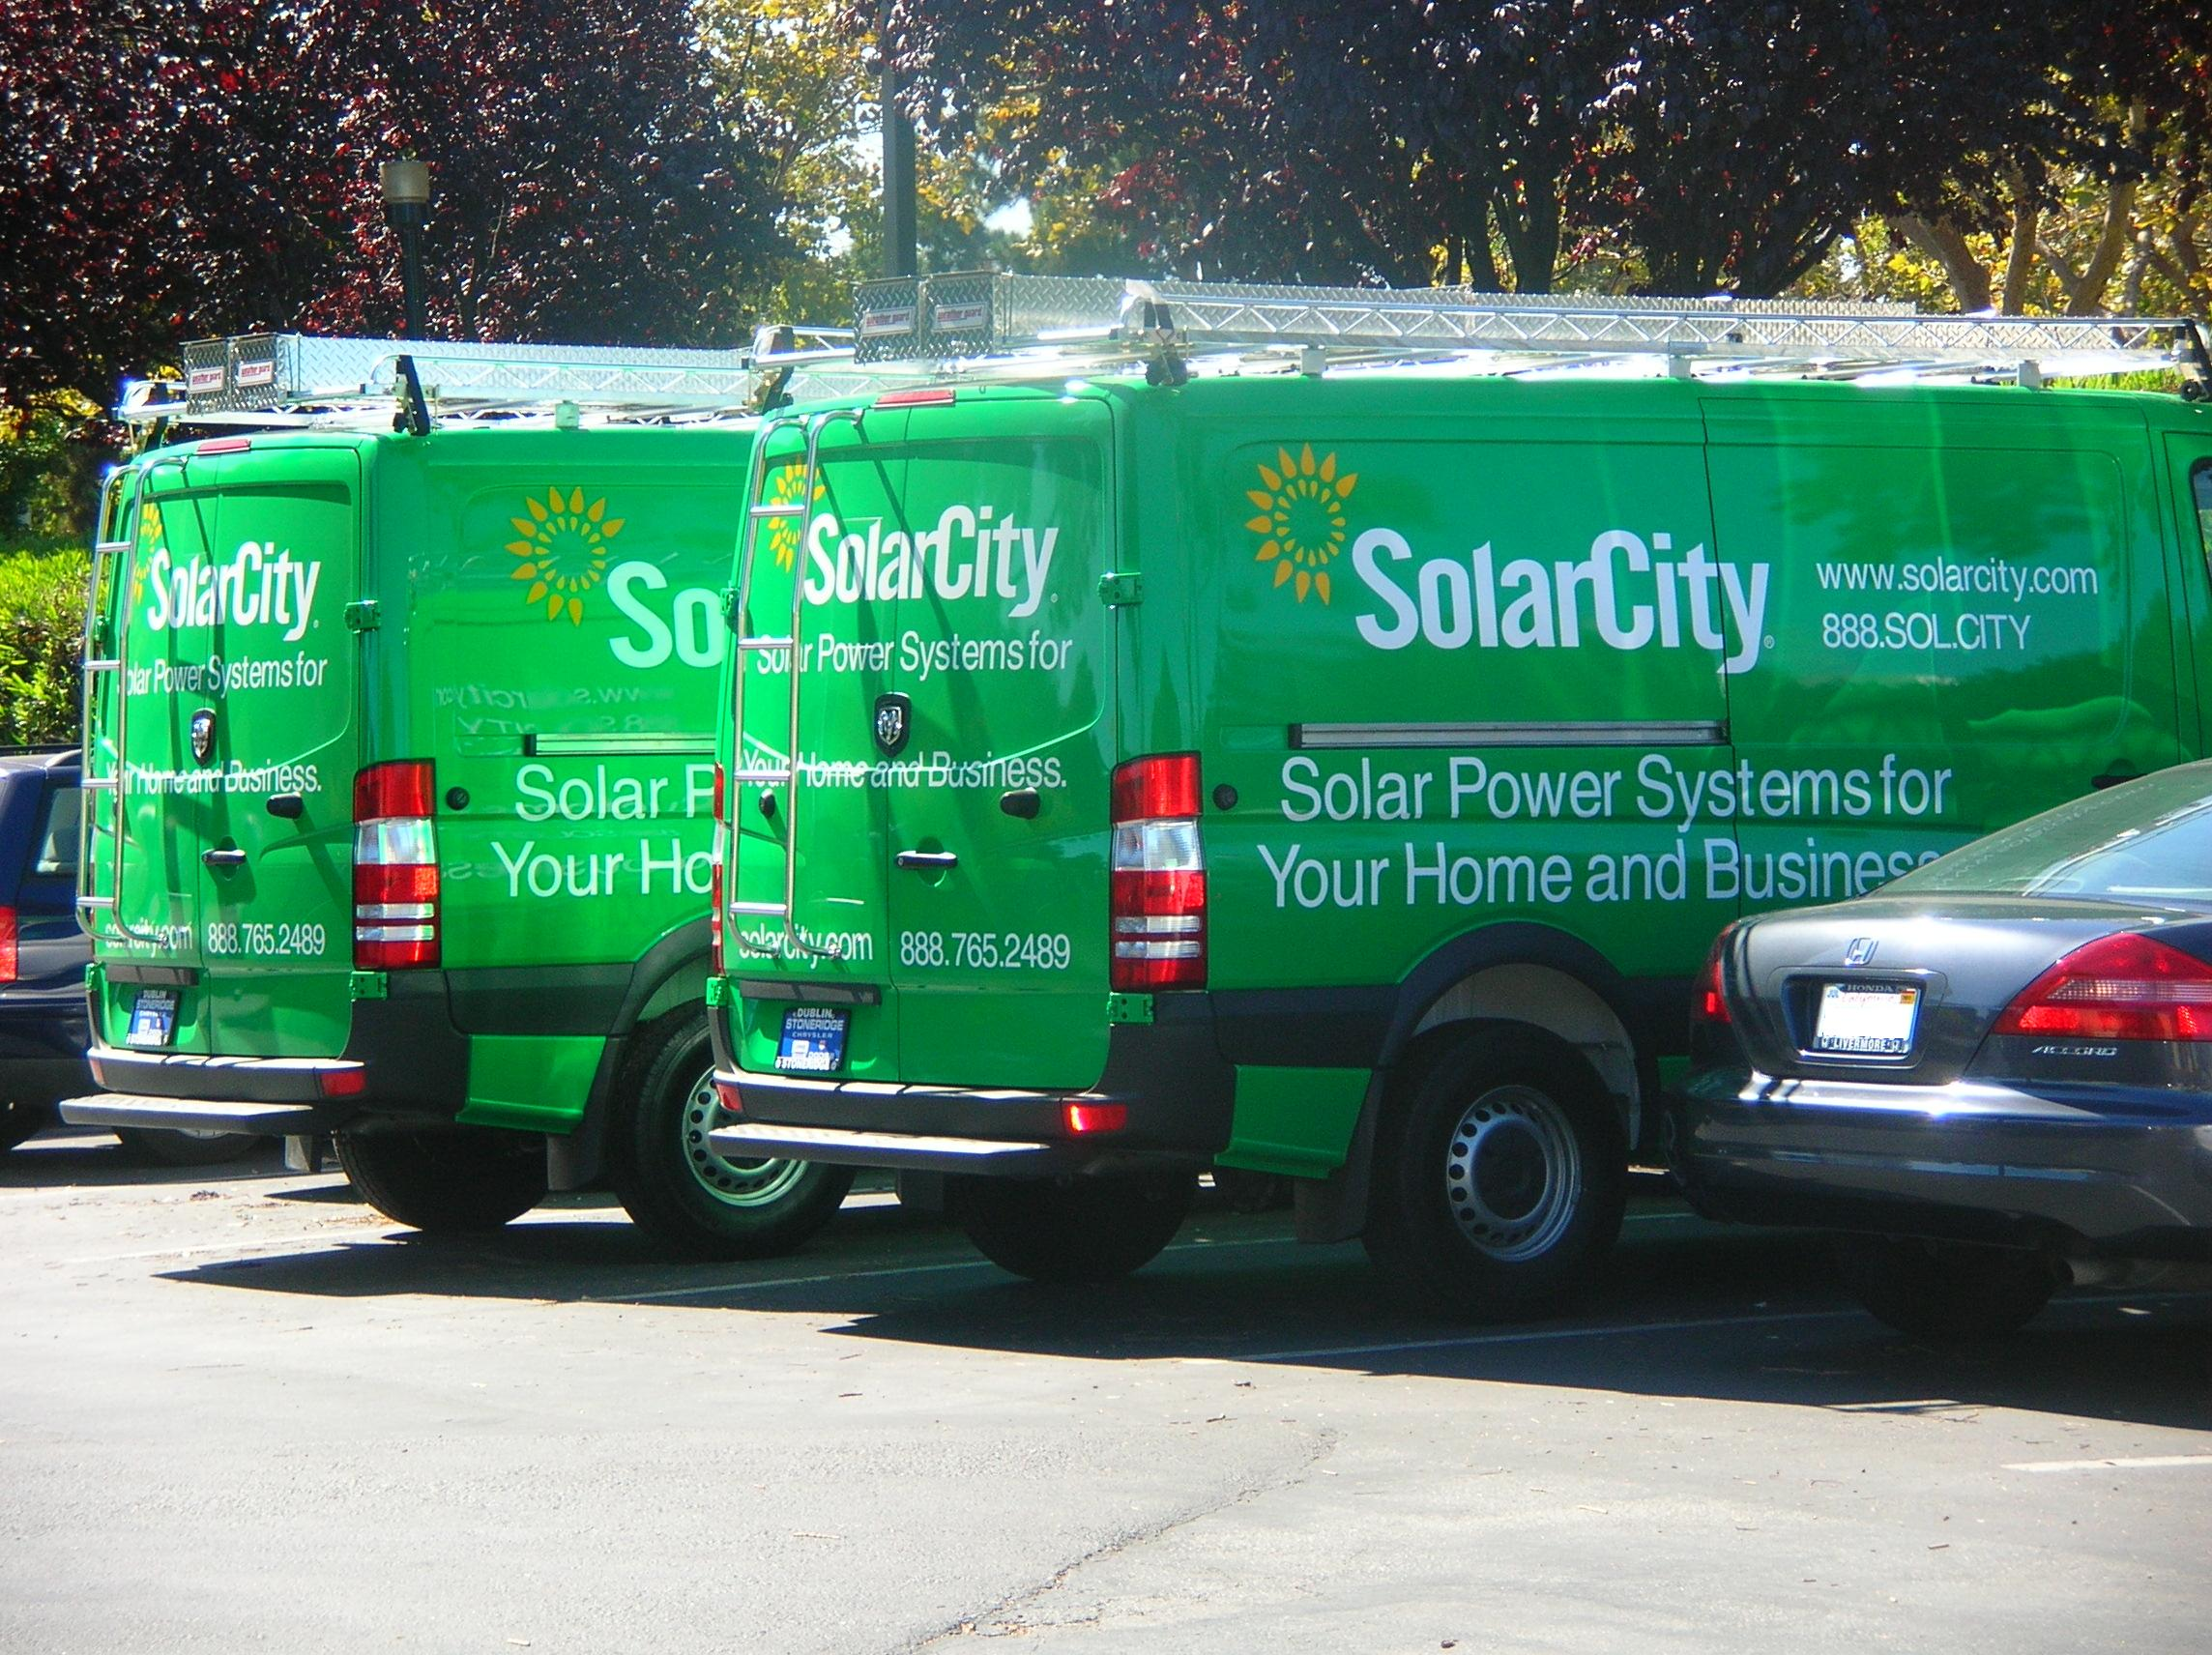 SolarCity Vehicles